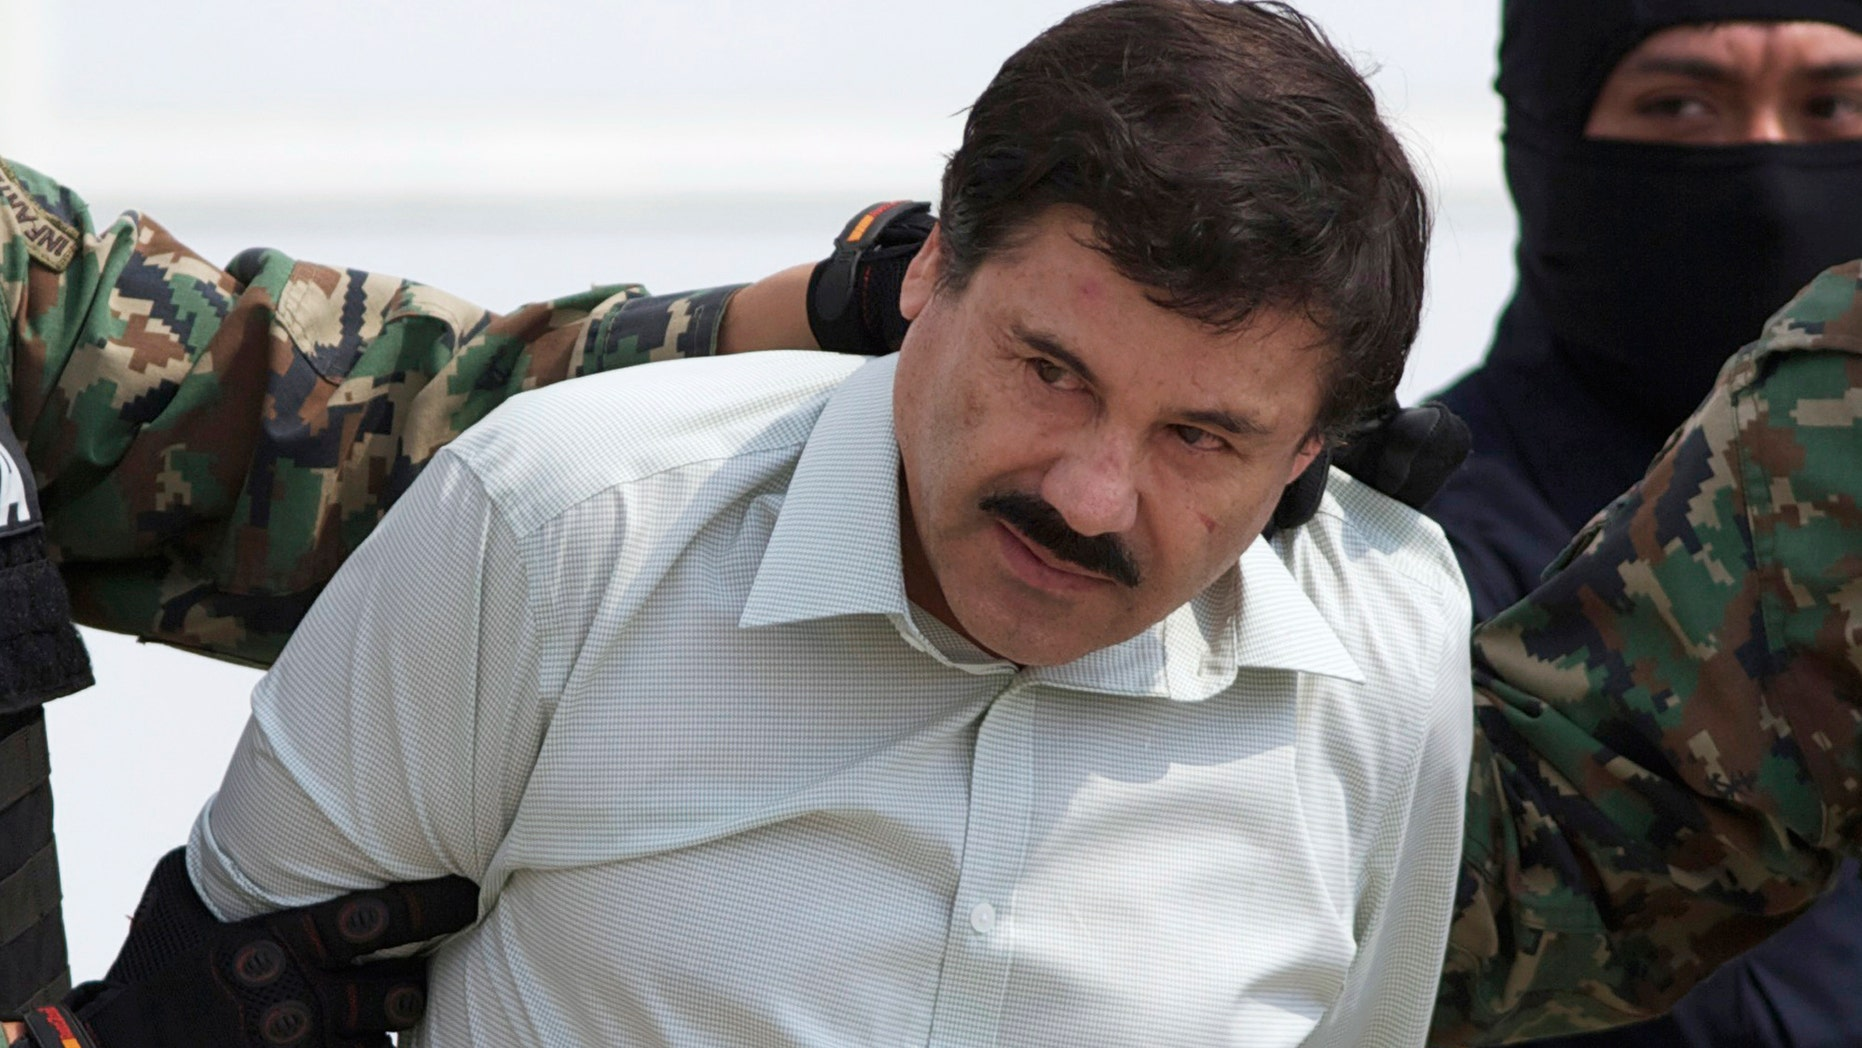 """Feb. 22, 2014:  Joaquin """"El Chapo"""" Guzman, the head of Mexico's Sinaloa Cartel, is escorted to a helicopter in Mexico City following his capture overnight in the beach resort town of Mazatlan."""